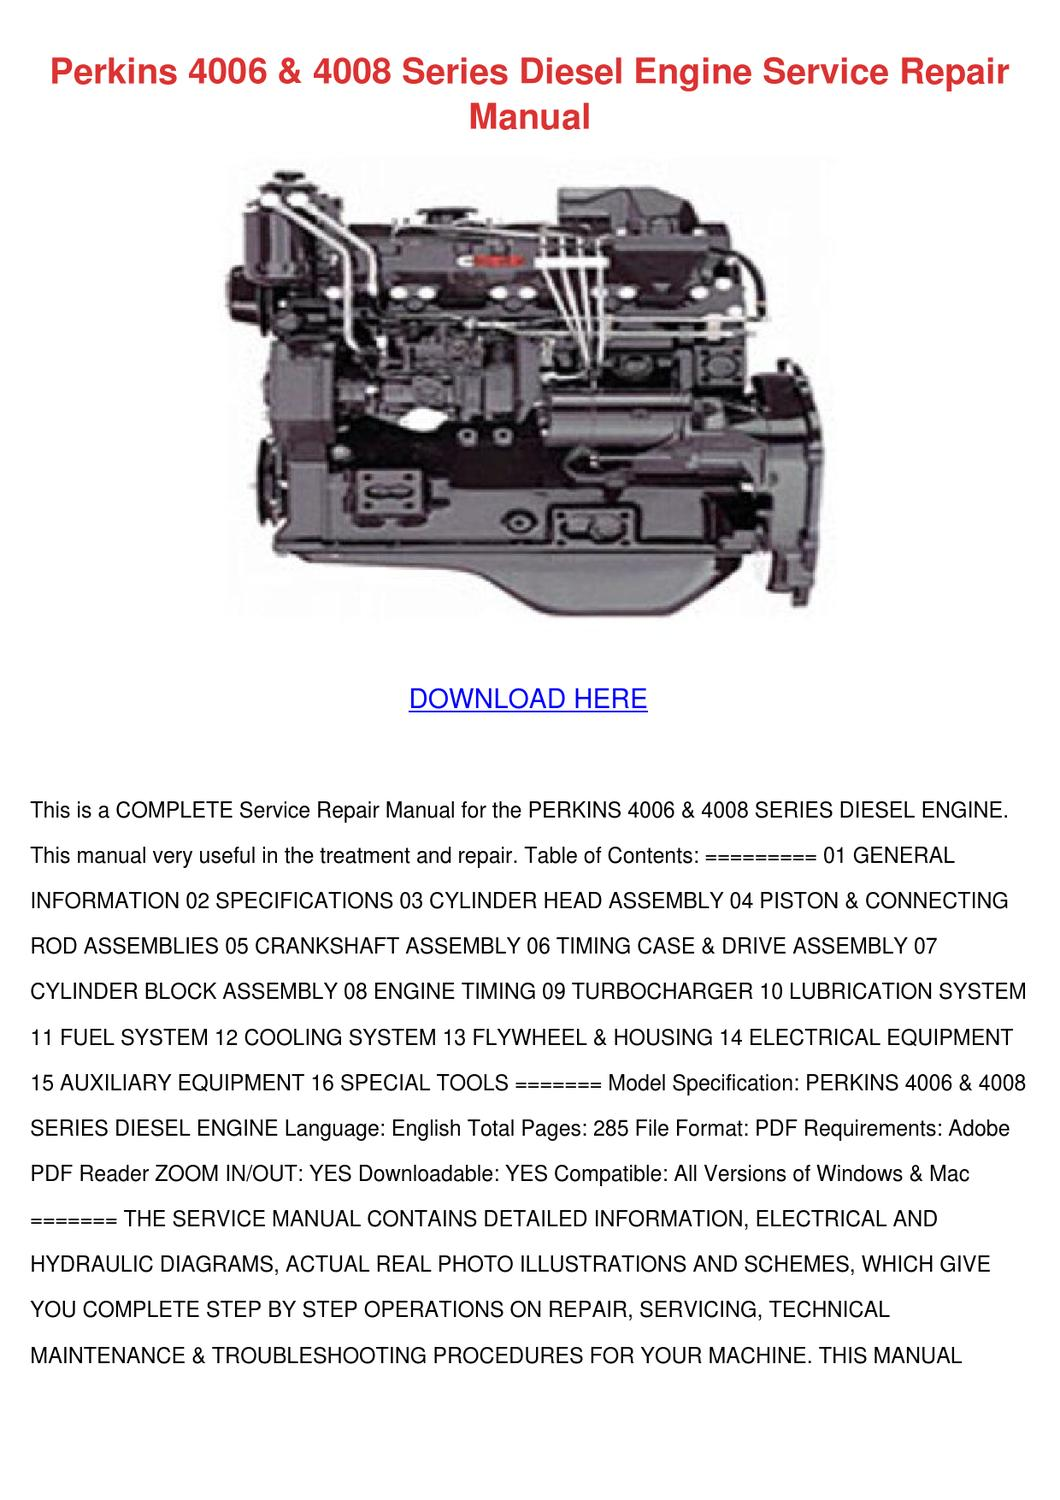 hight resolution of perkins diesel engine fuel diagrams ruud urgg wiring diagram perkins diesel engine identification 4 cylinder perkins